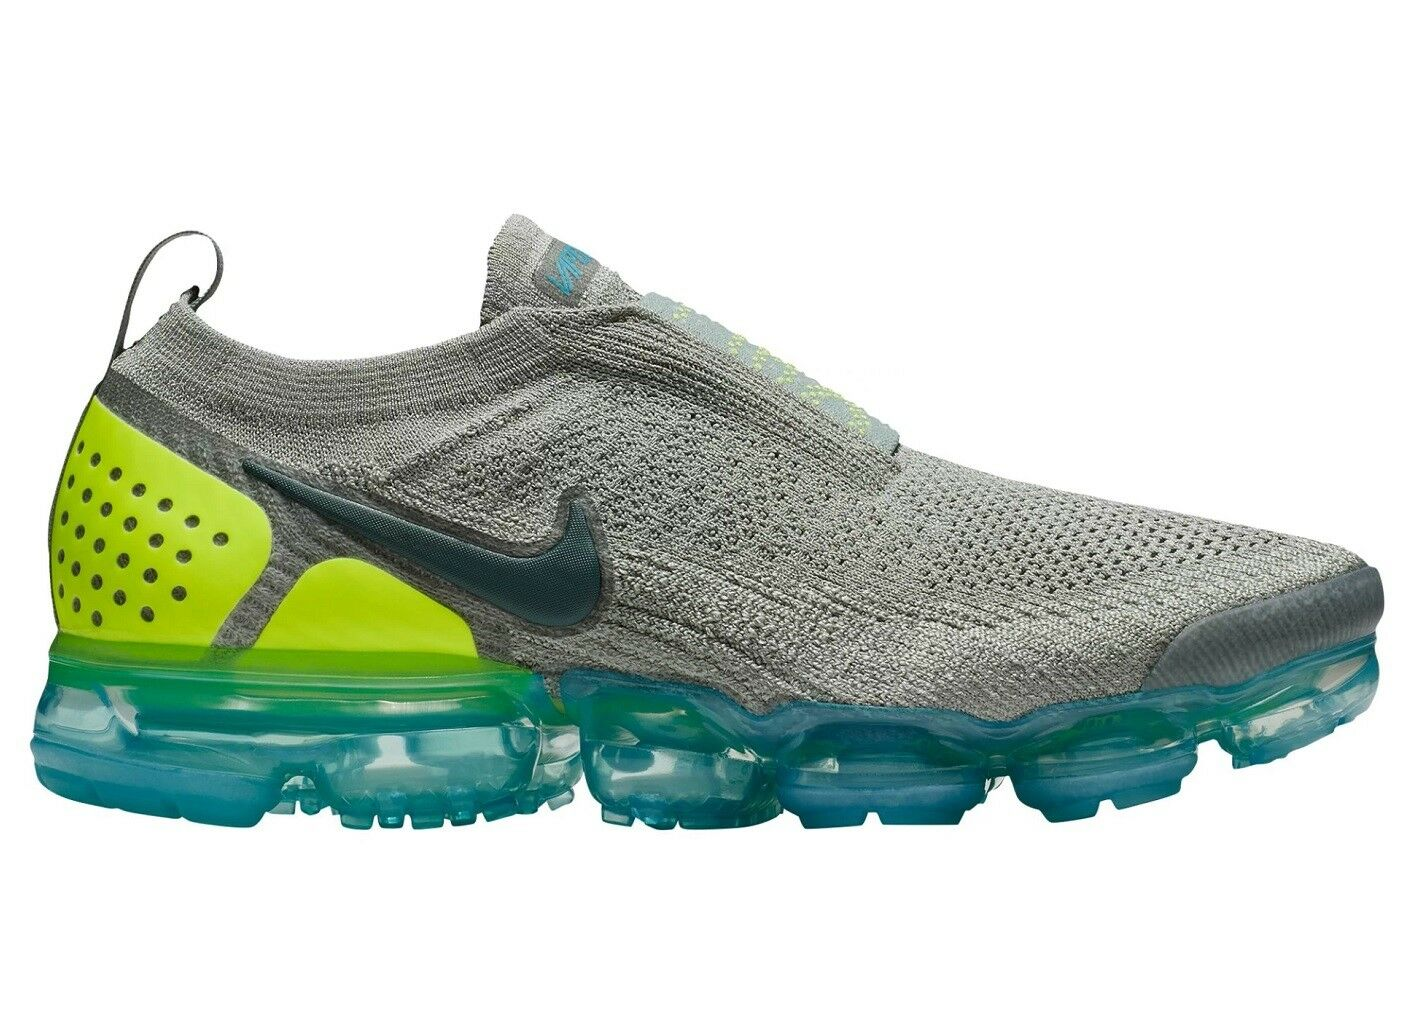 Nike Air Vapormax Flyknit Moc 2 AH7006-300 Mica Green Running Shoes Comfortable Seasonal clearance sale